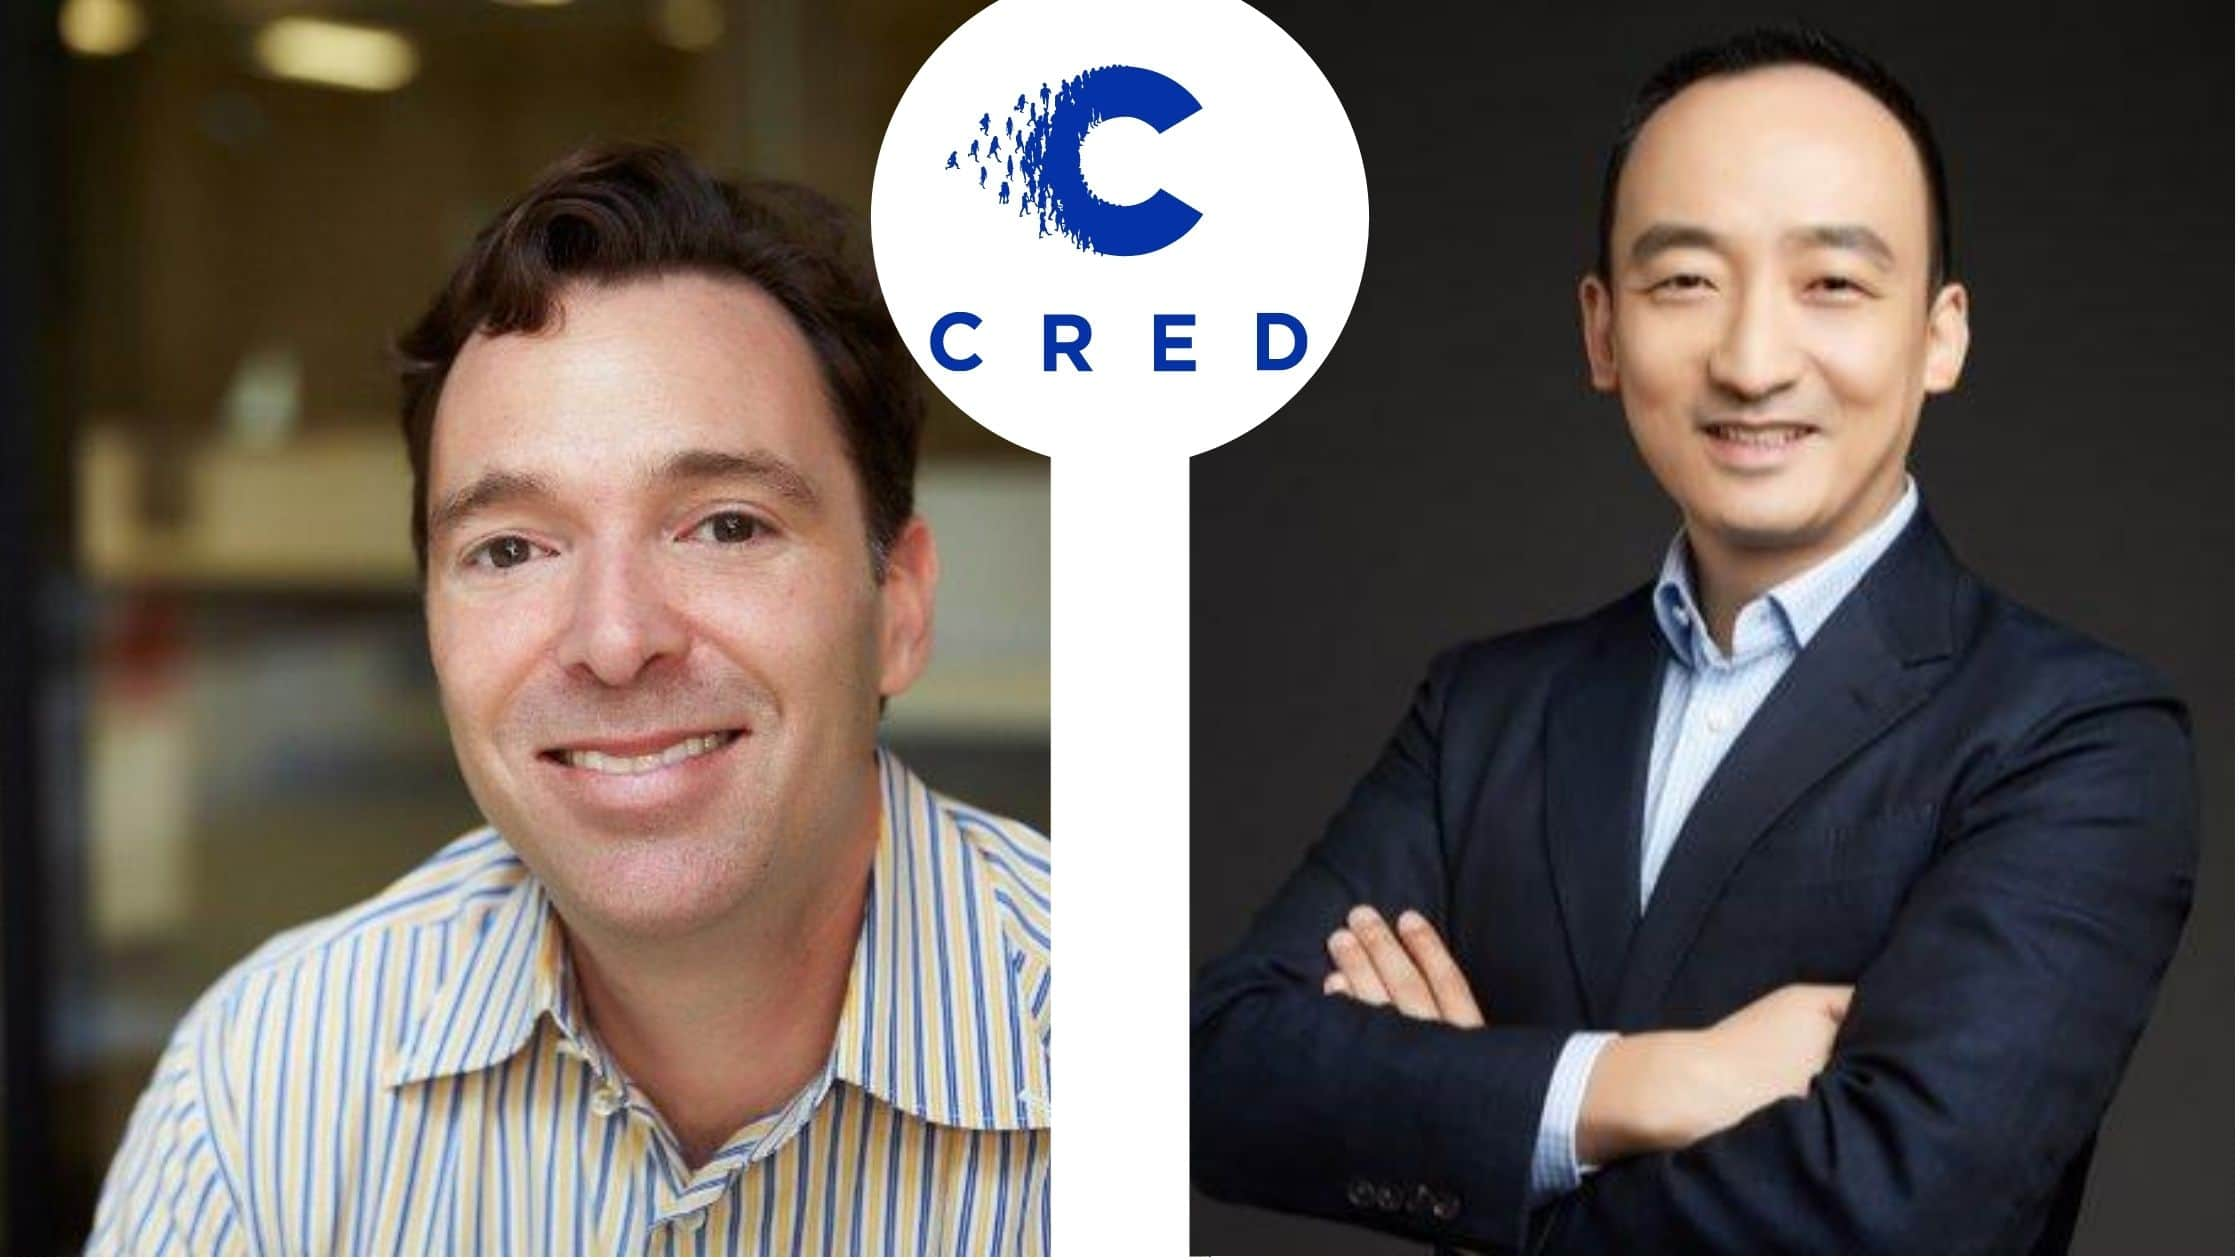 Who Is Behind Cred?